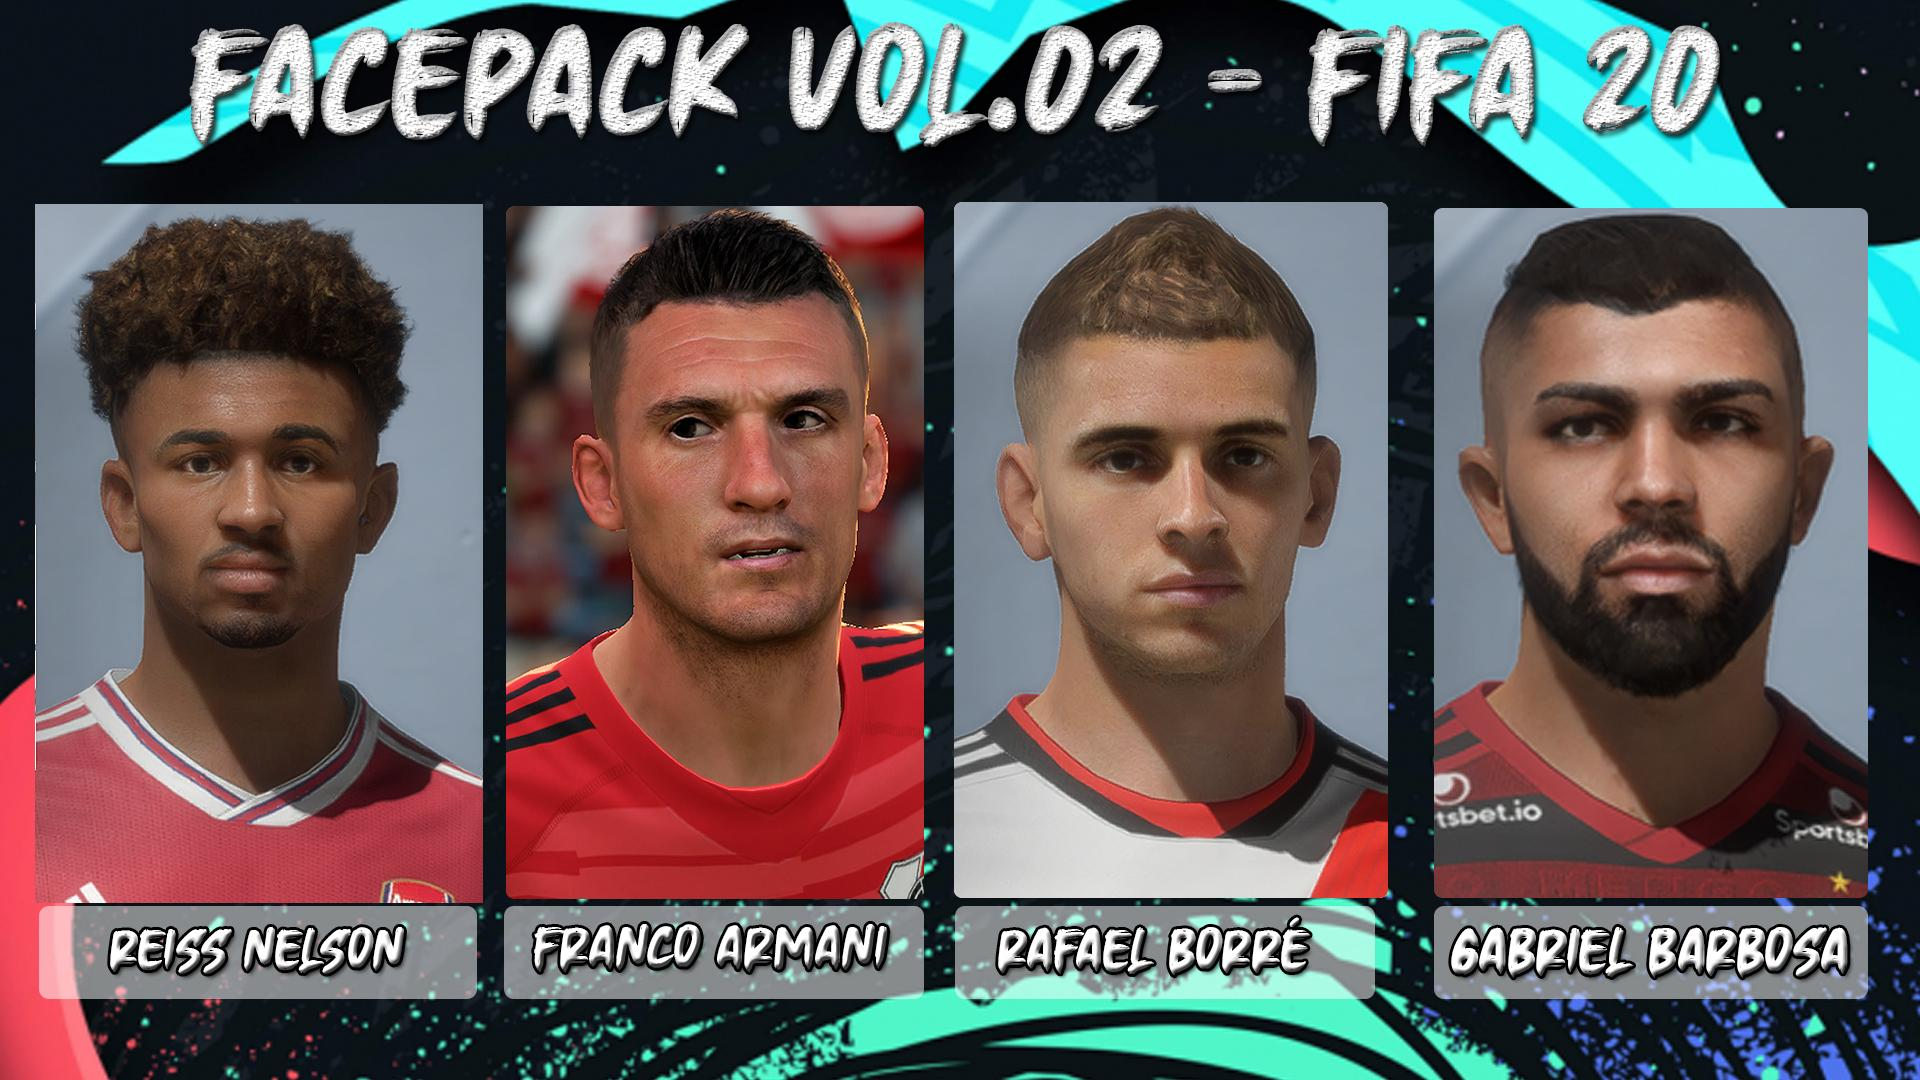 Facepack Vol.02 - Fifa 20​